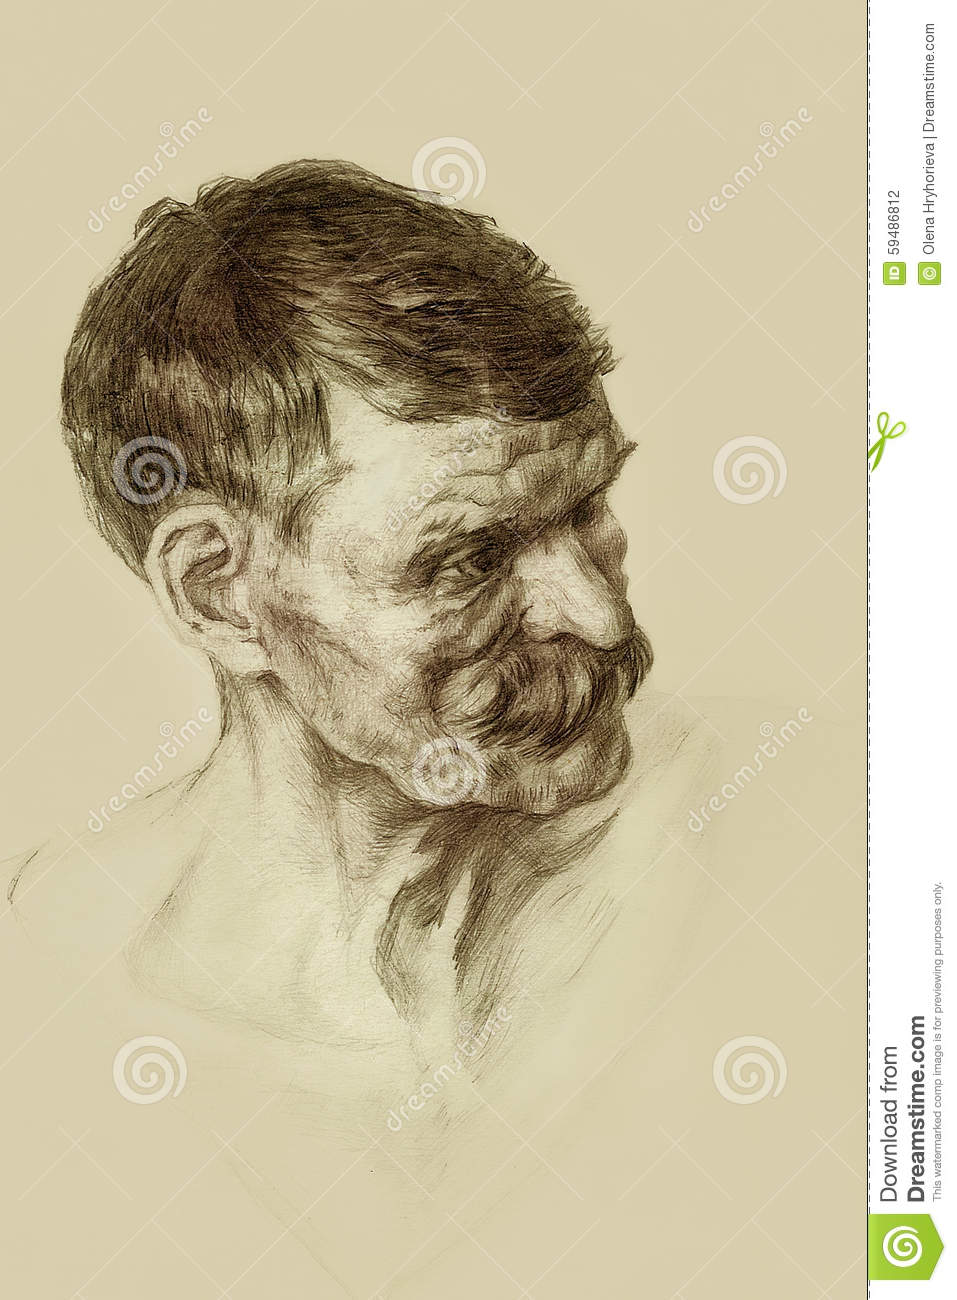 portrait of an old man drawing stock illustration